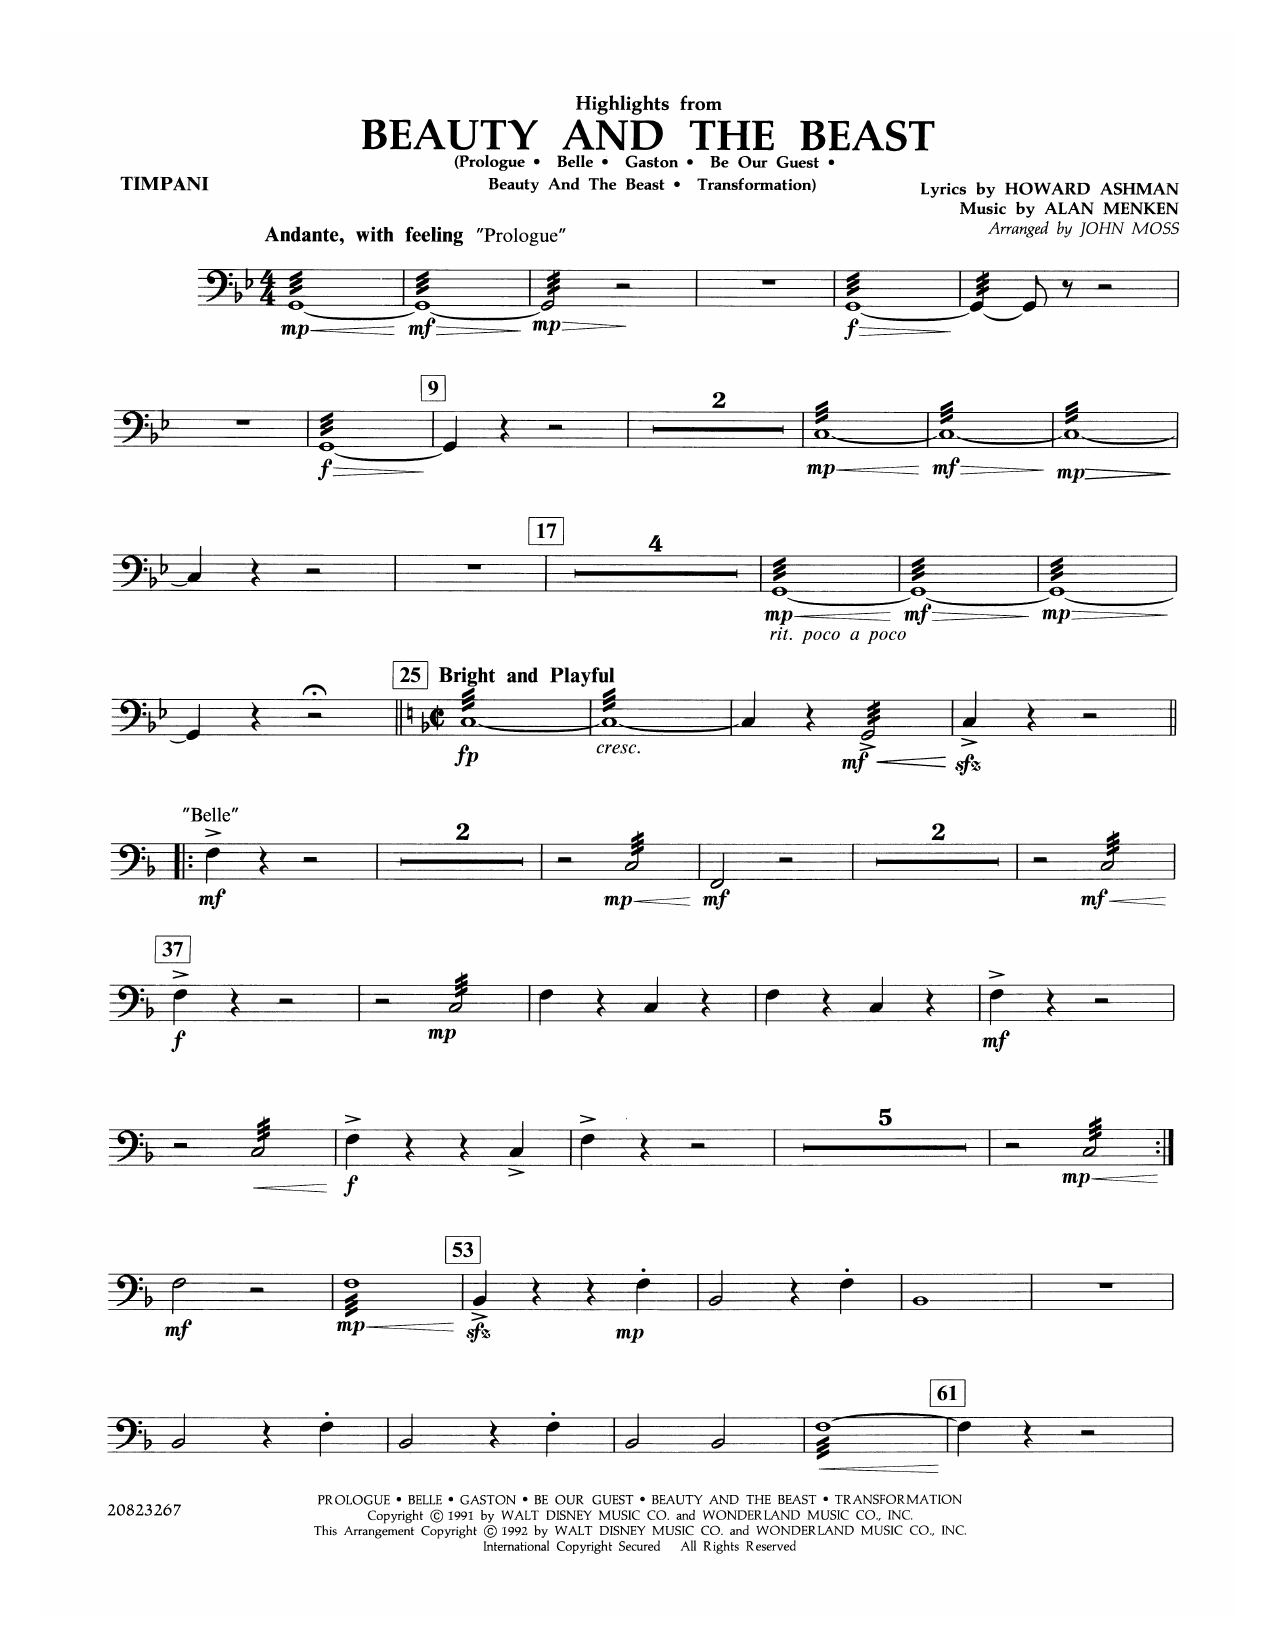 Highlights from Beauty and the Beast - Timpani Sheet Music